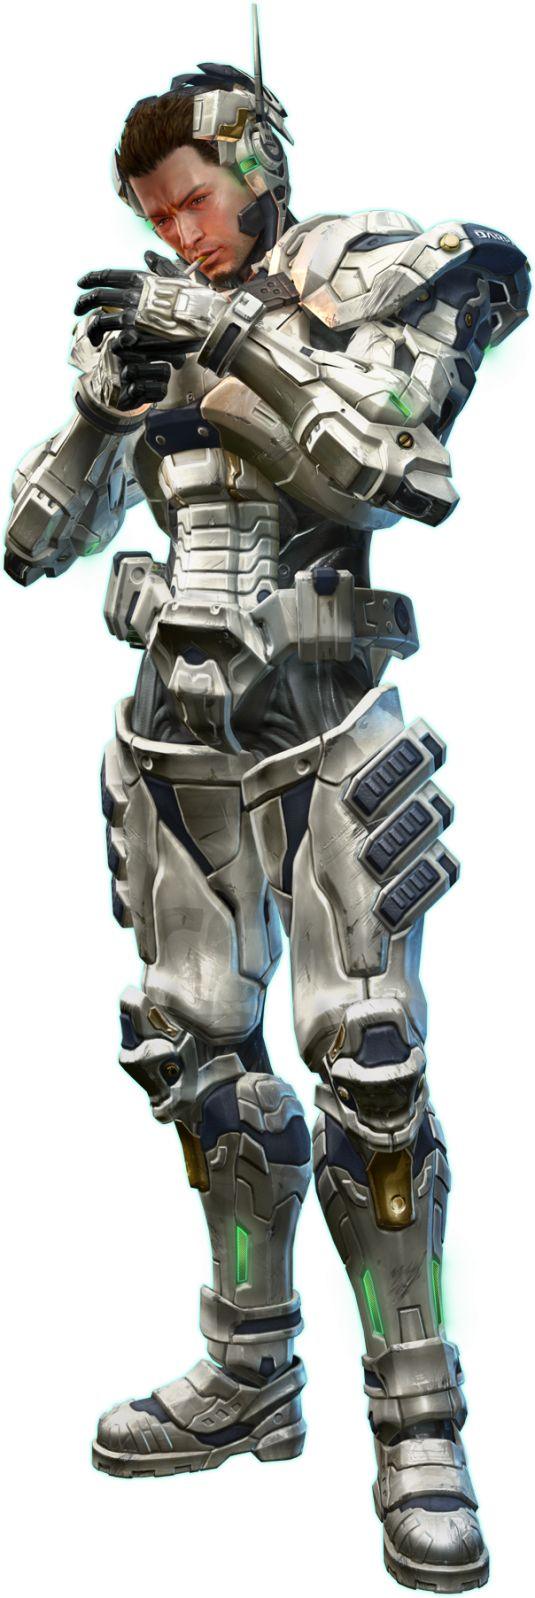 Armors, Future soldier and Warriors on Pinterest